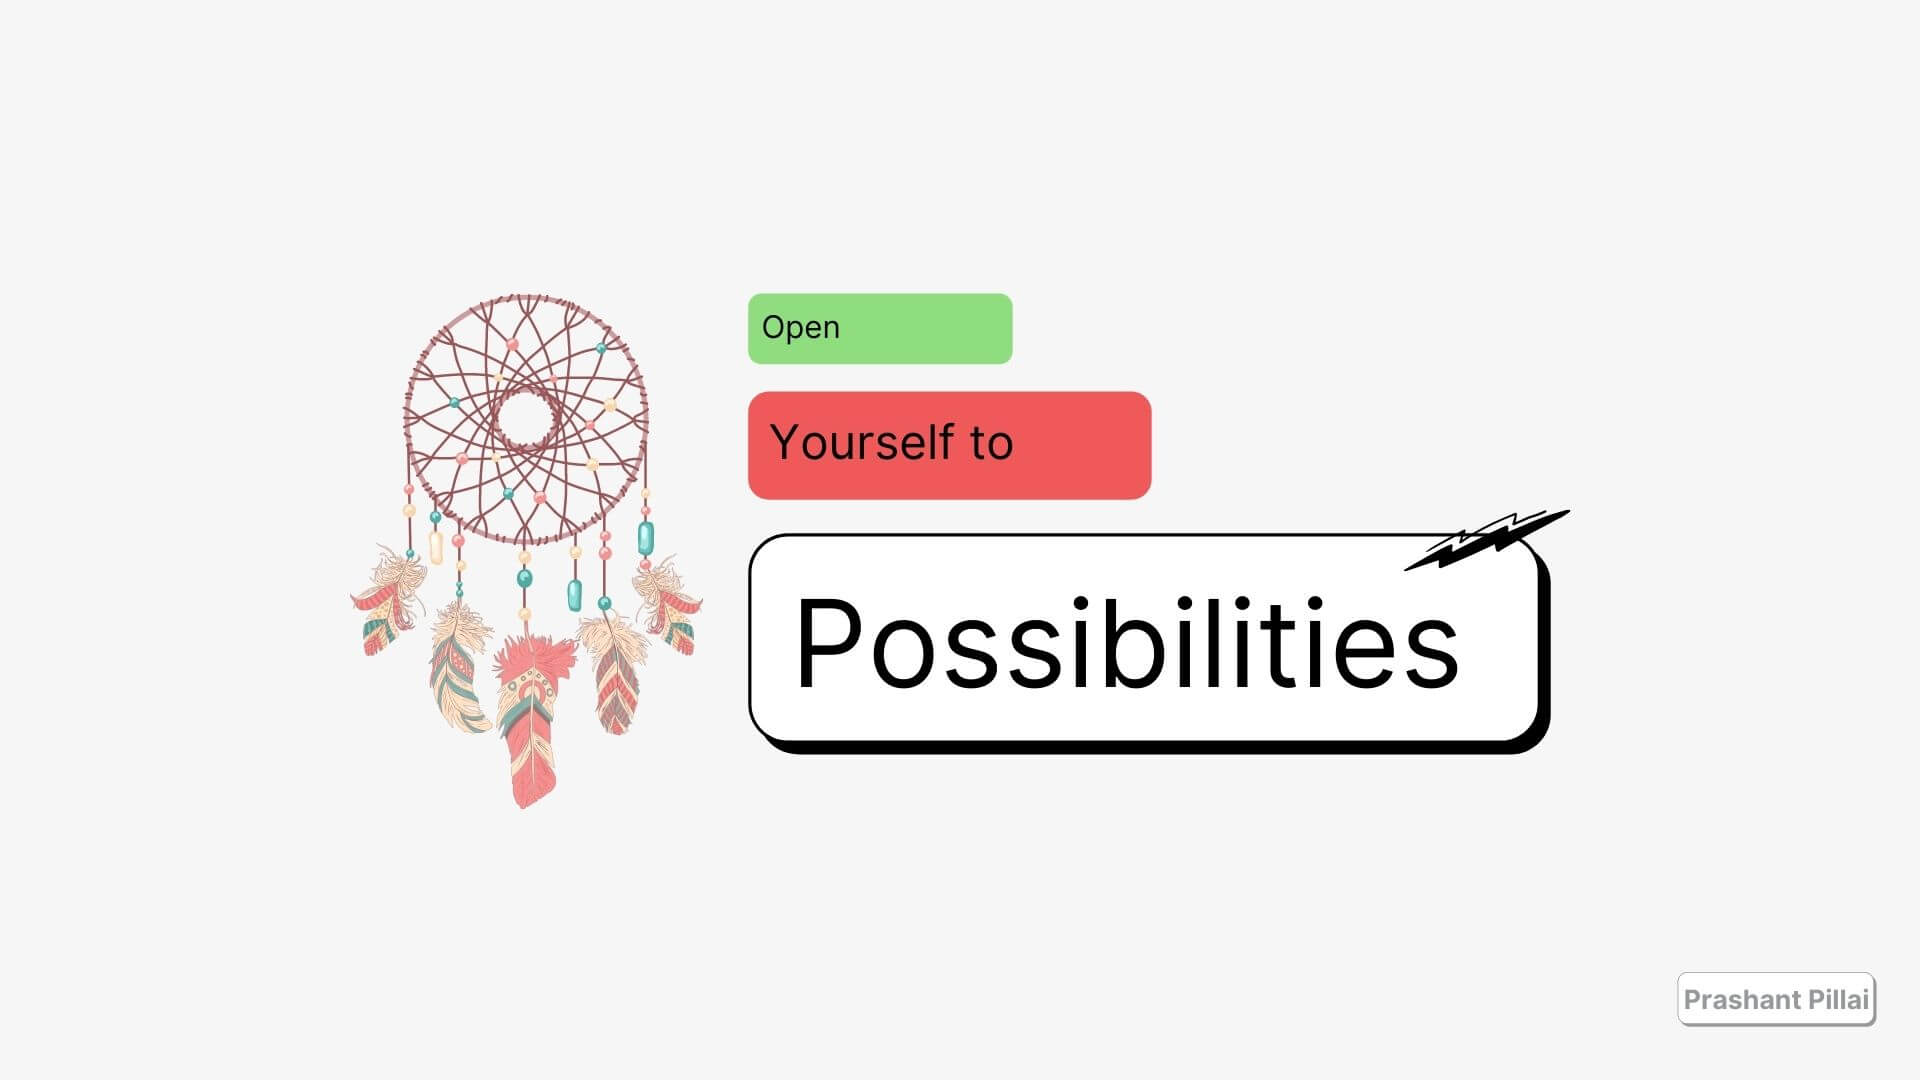 open yourself to possibilities illustration